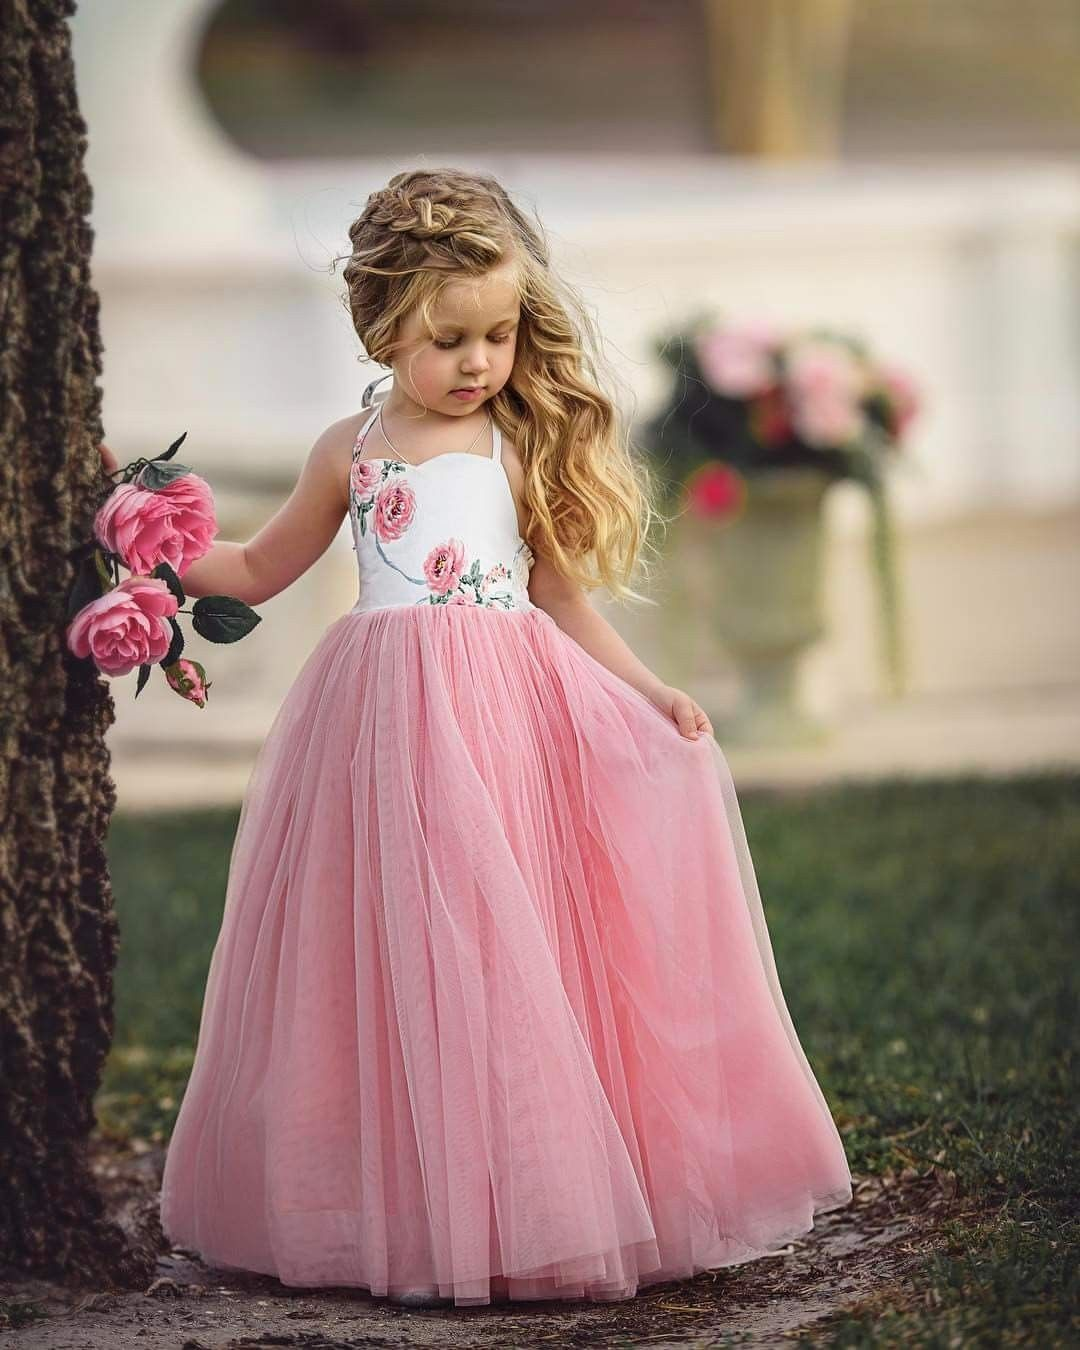 Pin de beauty of life en Kidz Fashion | Pinterest | Vestidos de ...